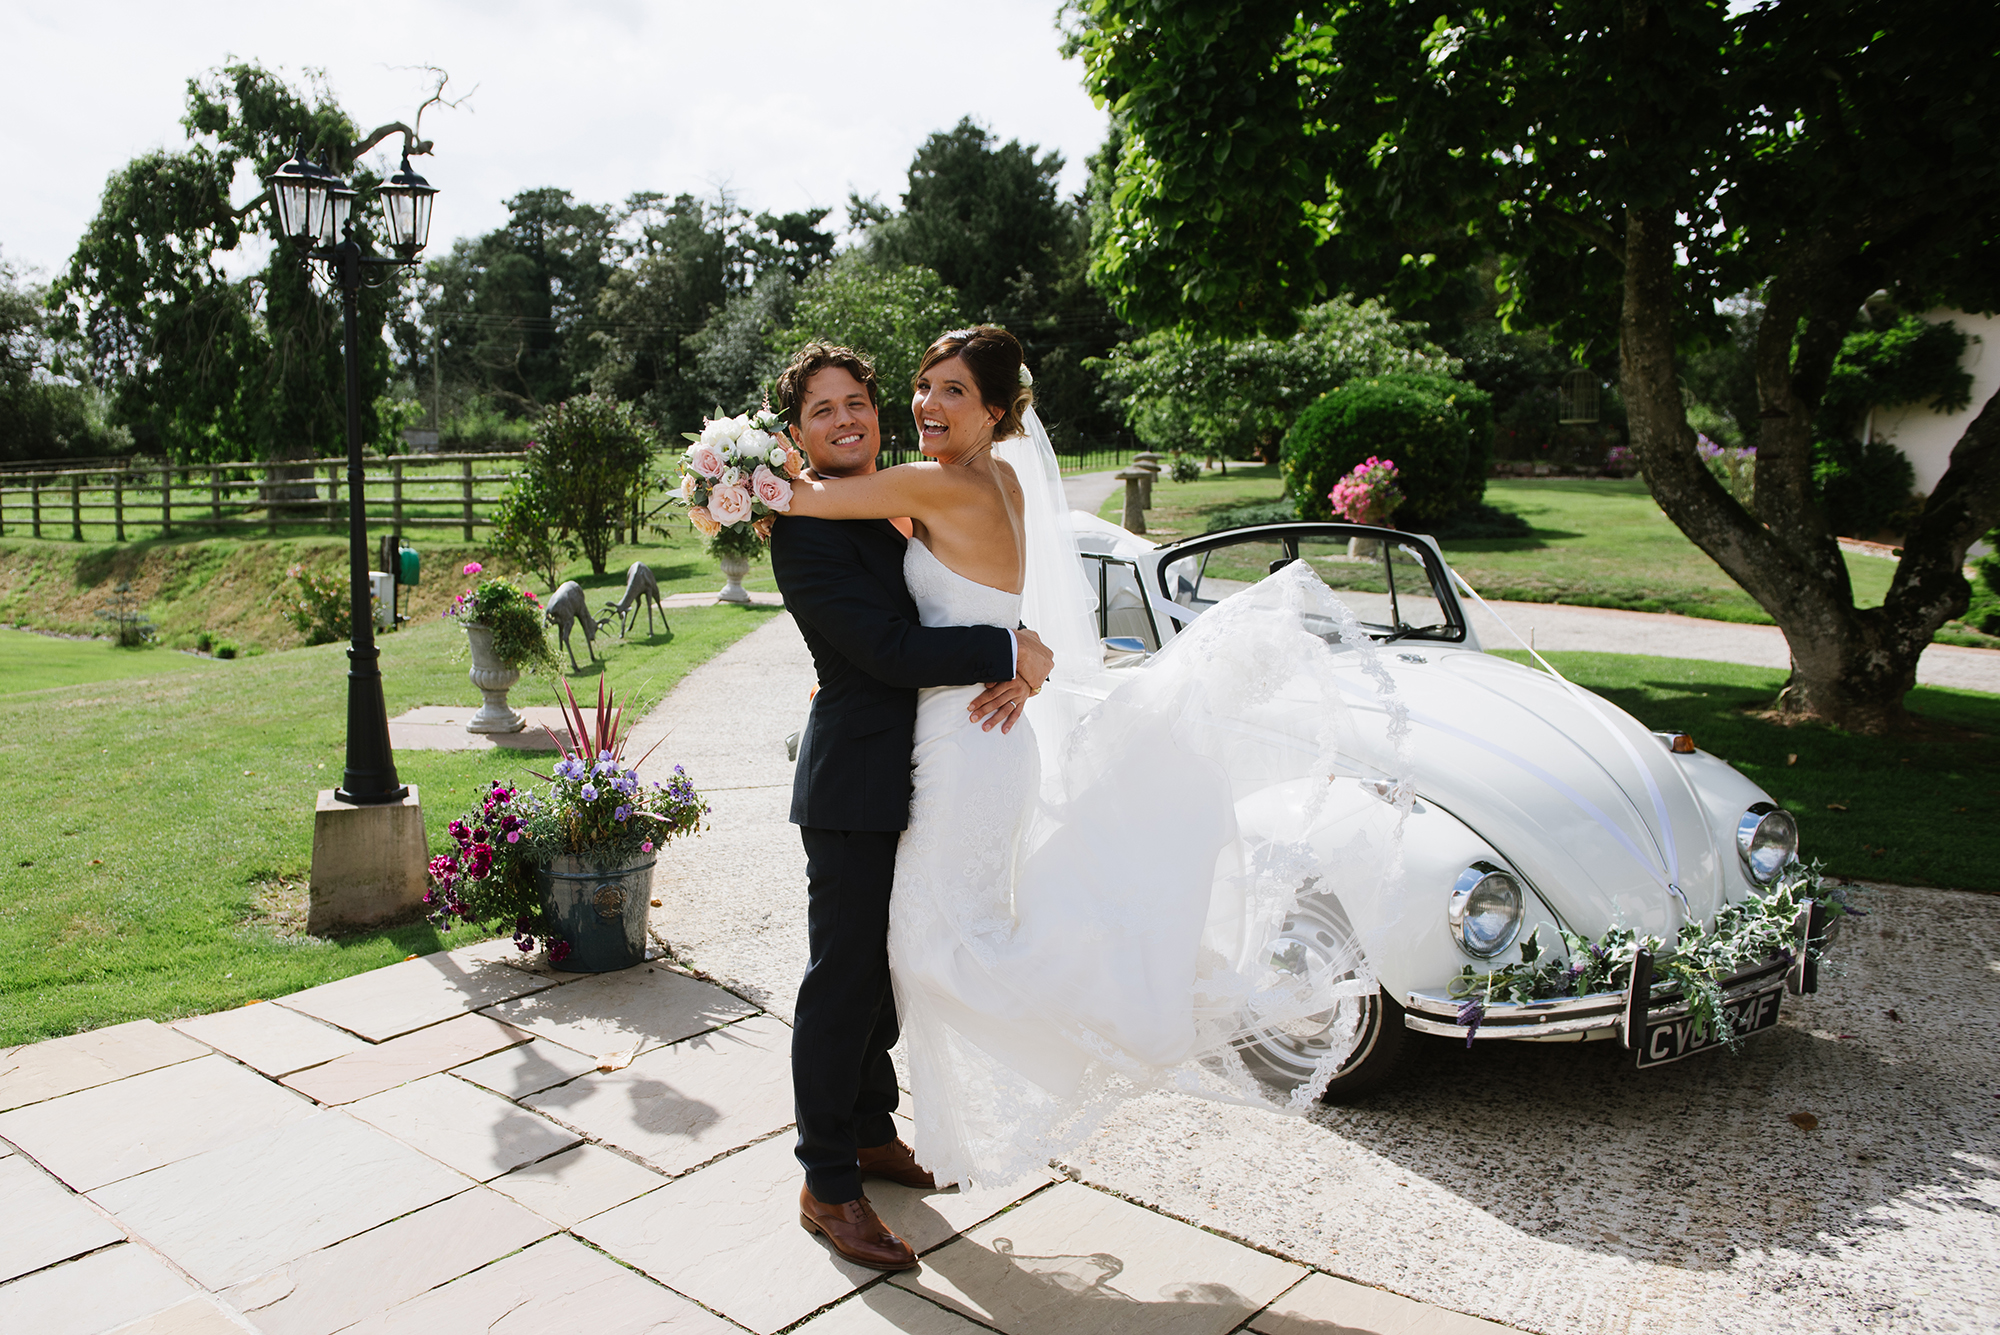 Bride and groom smile and embrace by VW wedding car